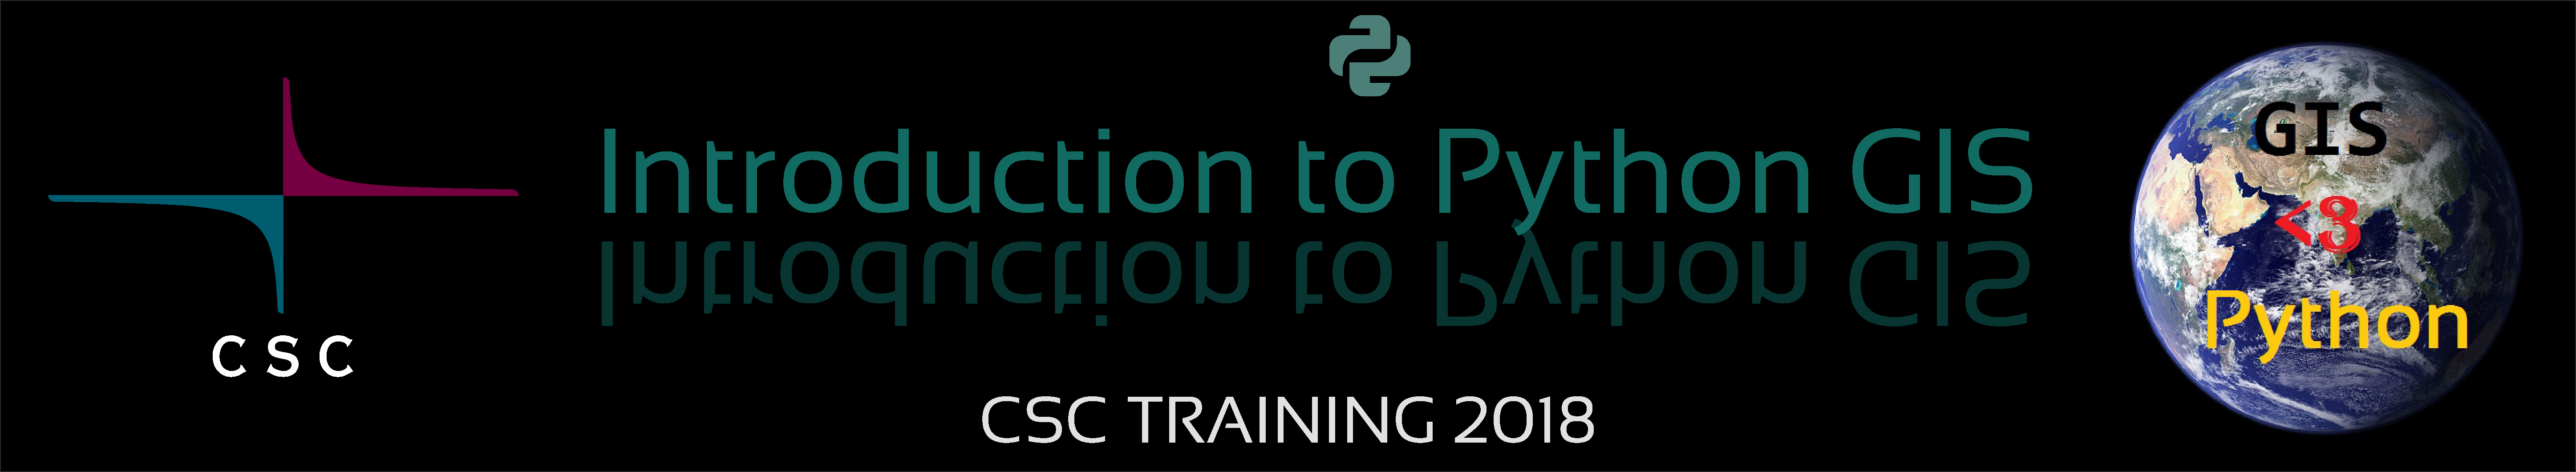 Welcome to introduction to python gis course 2018 intro to welcome to introduction to python gis course 2018 1betcityfo Gallery